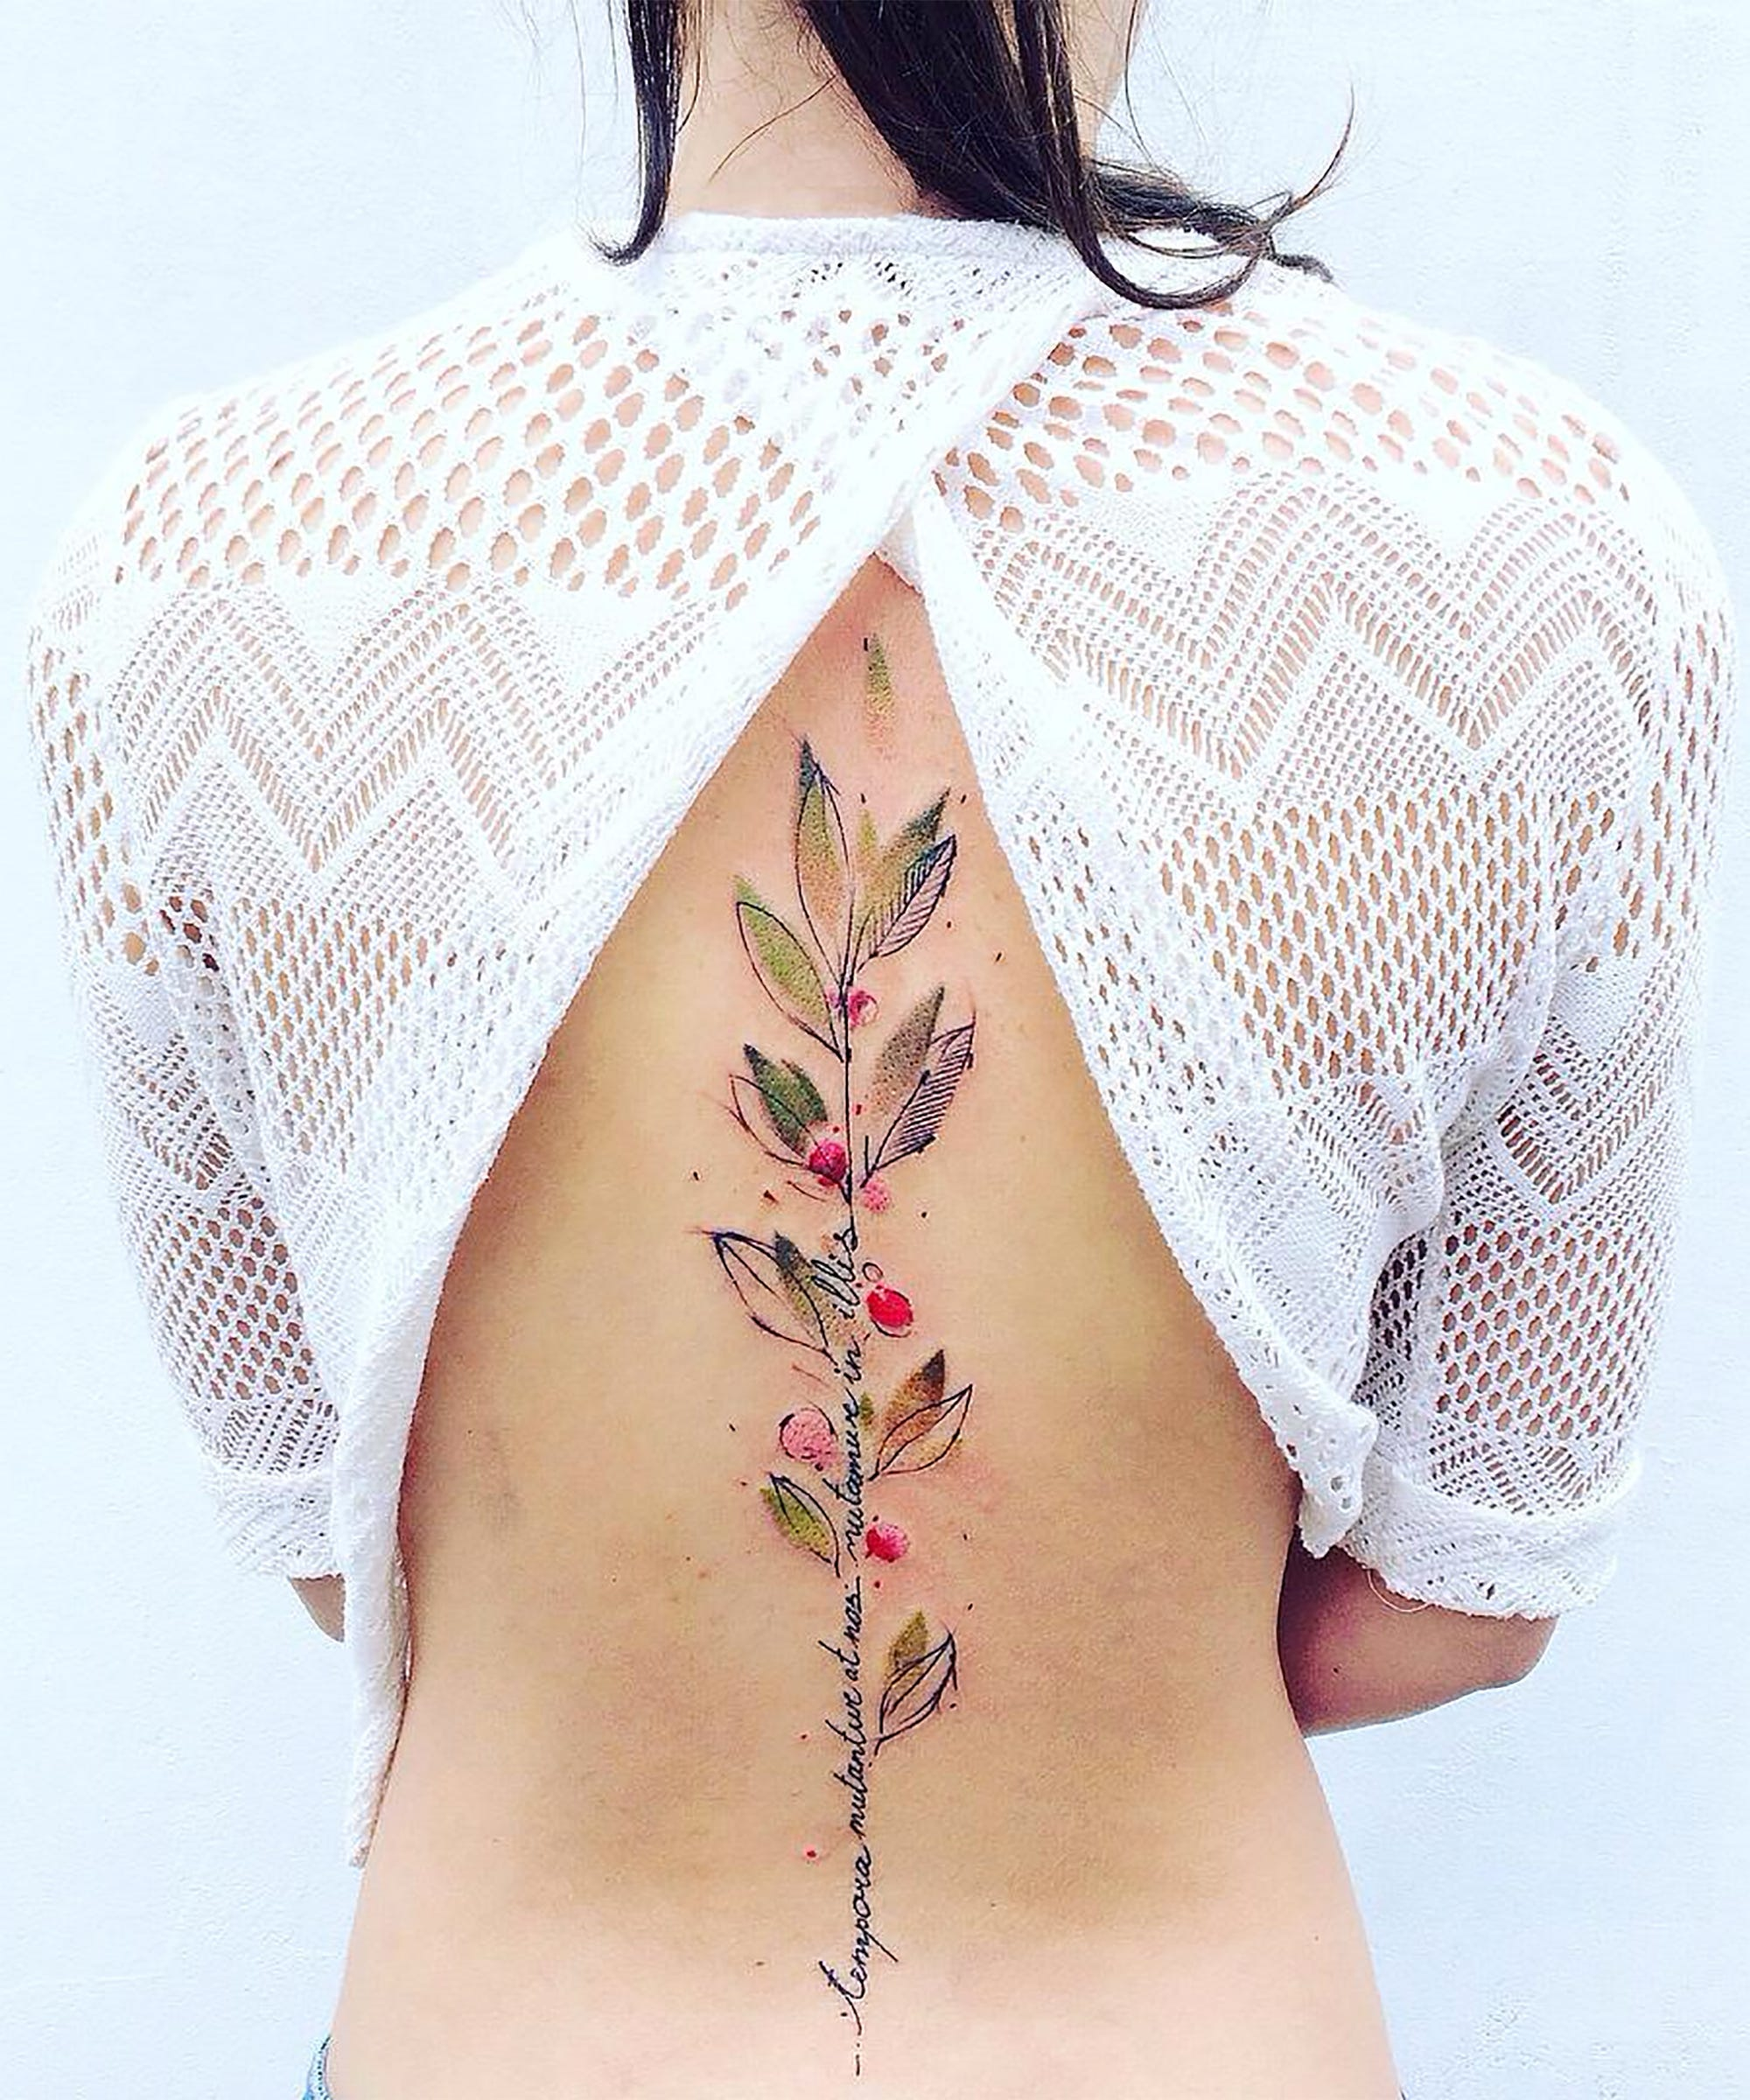 Watercolor Tattoos That Are Perfect For Spring Designs